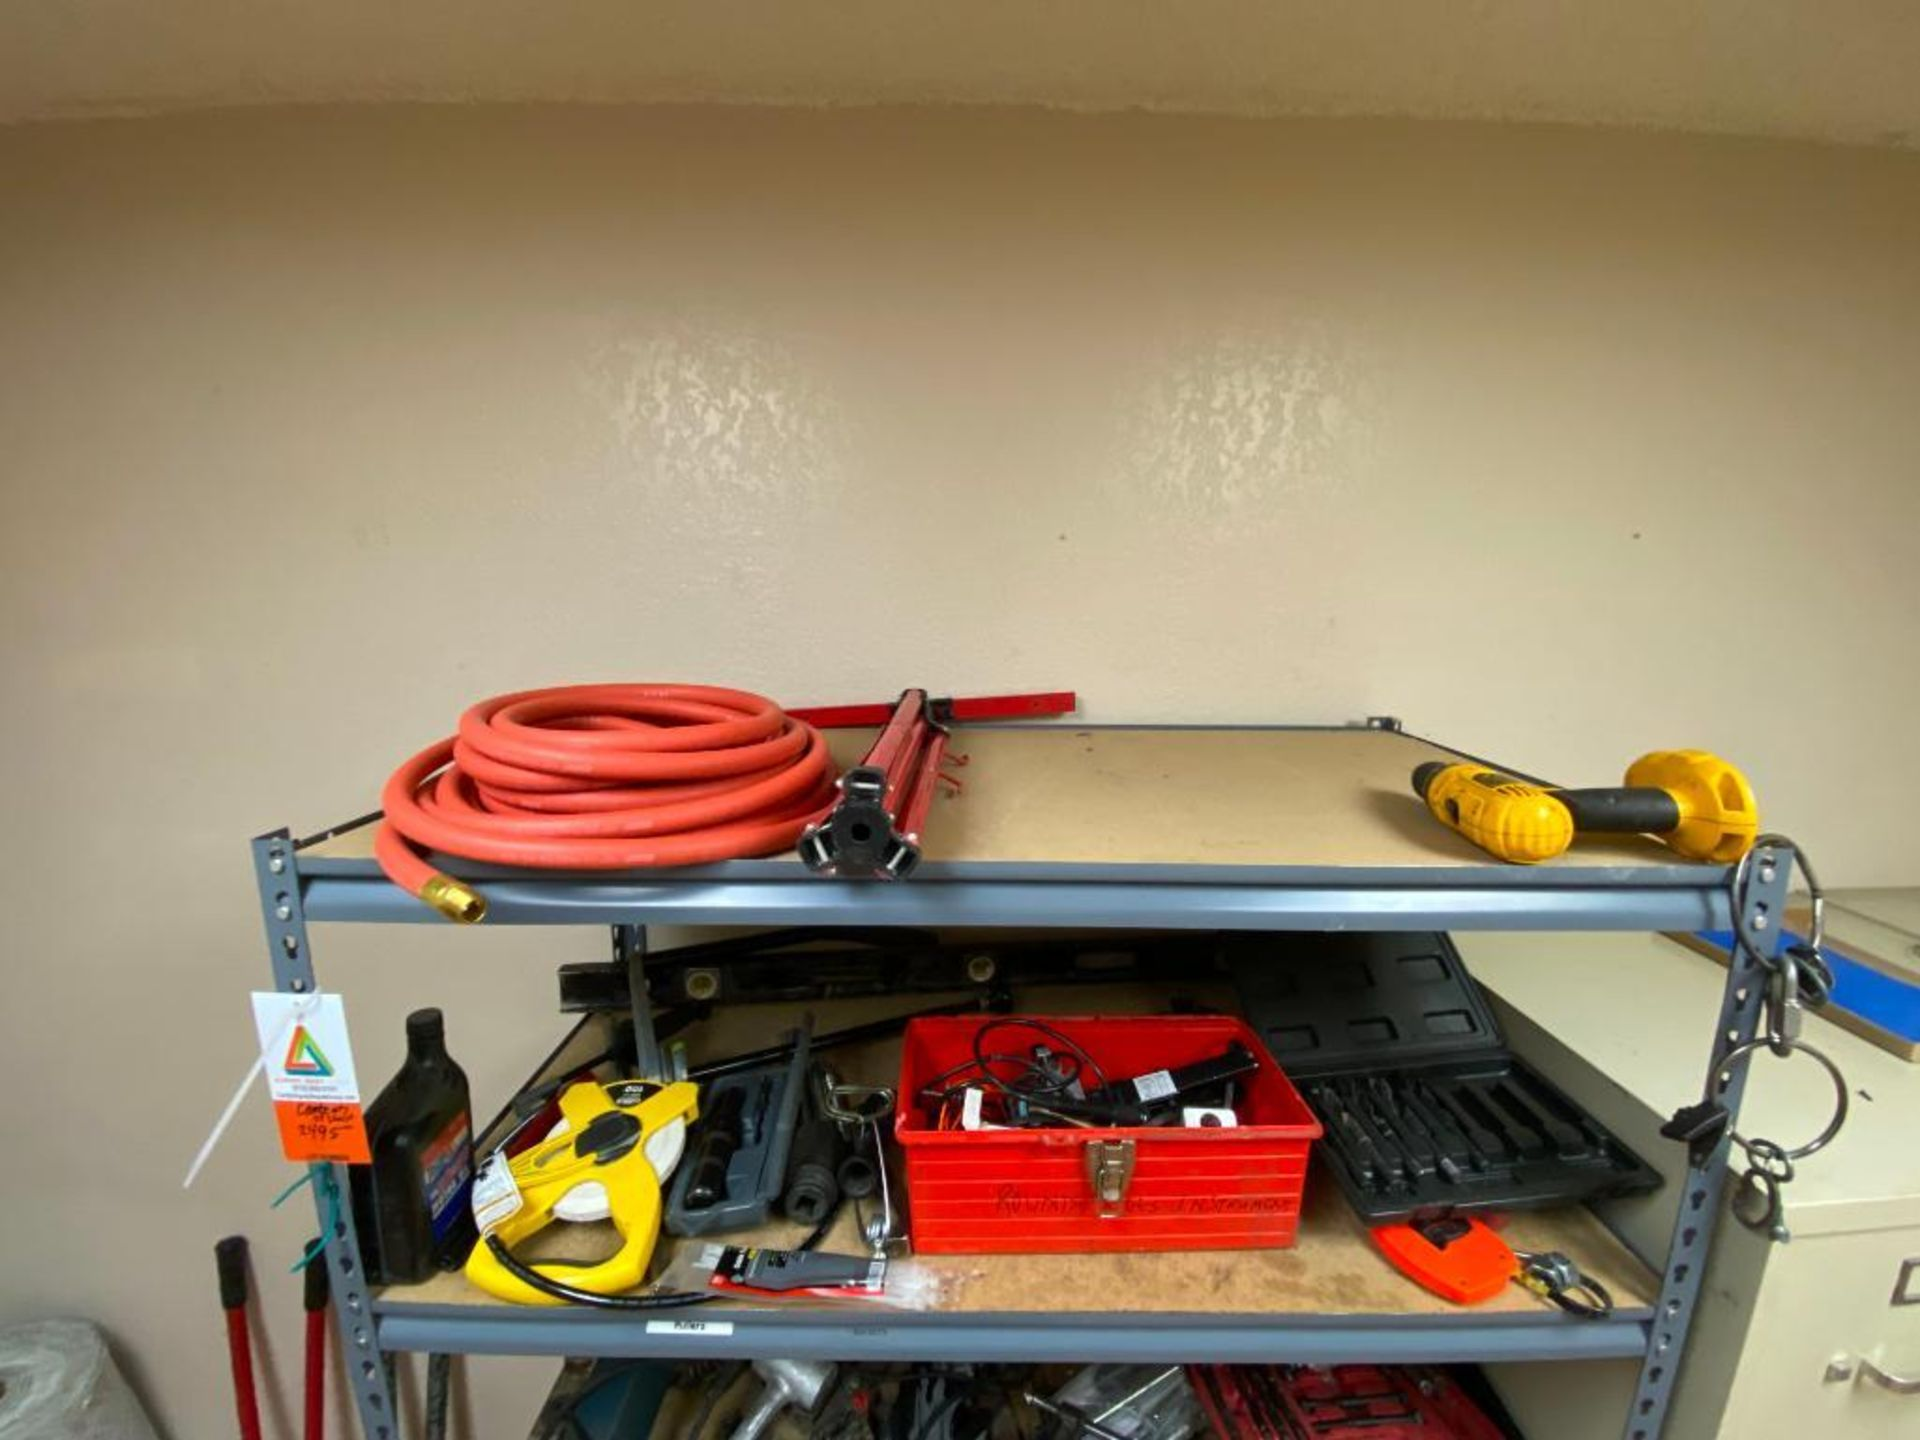 various tools includes bits, large wrenches, lockout tagout kit, grinder - Image 2 of 18